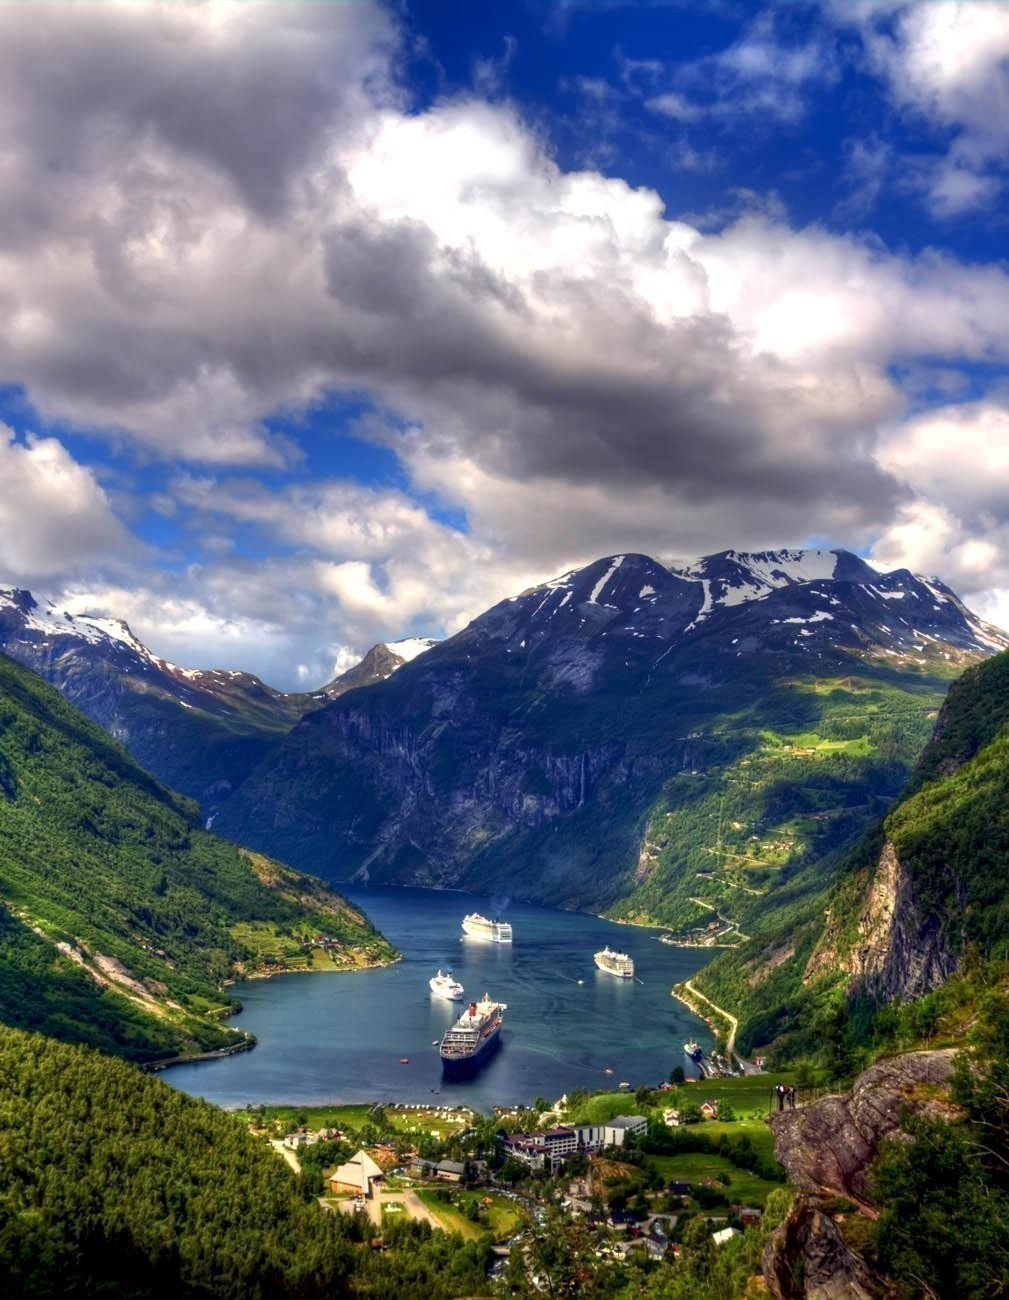 End of the famous Geiranger fjord | Norway Travel Guide